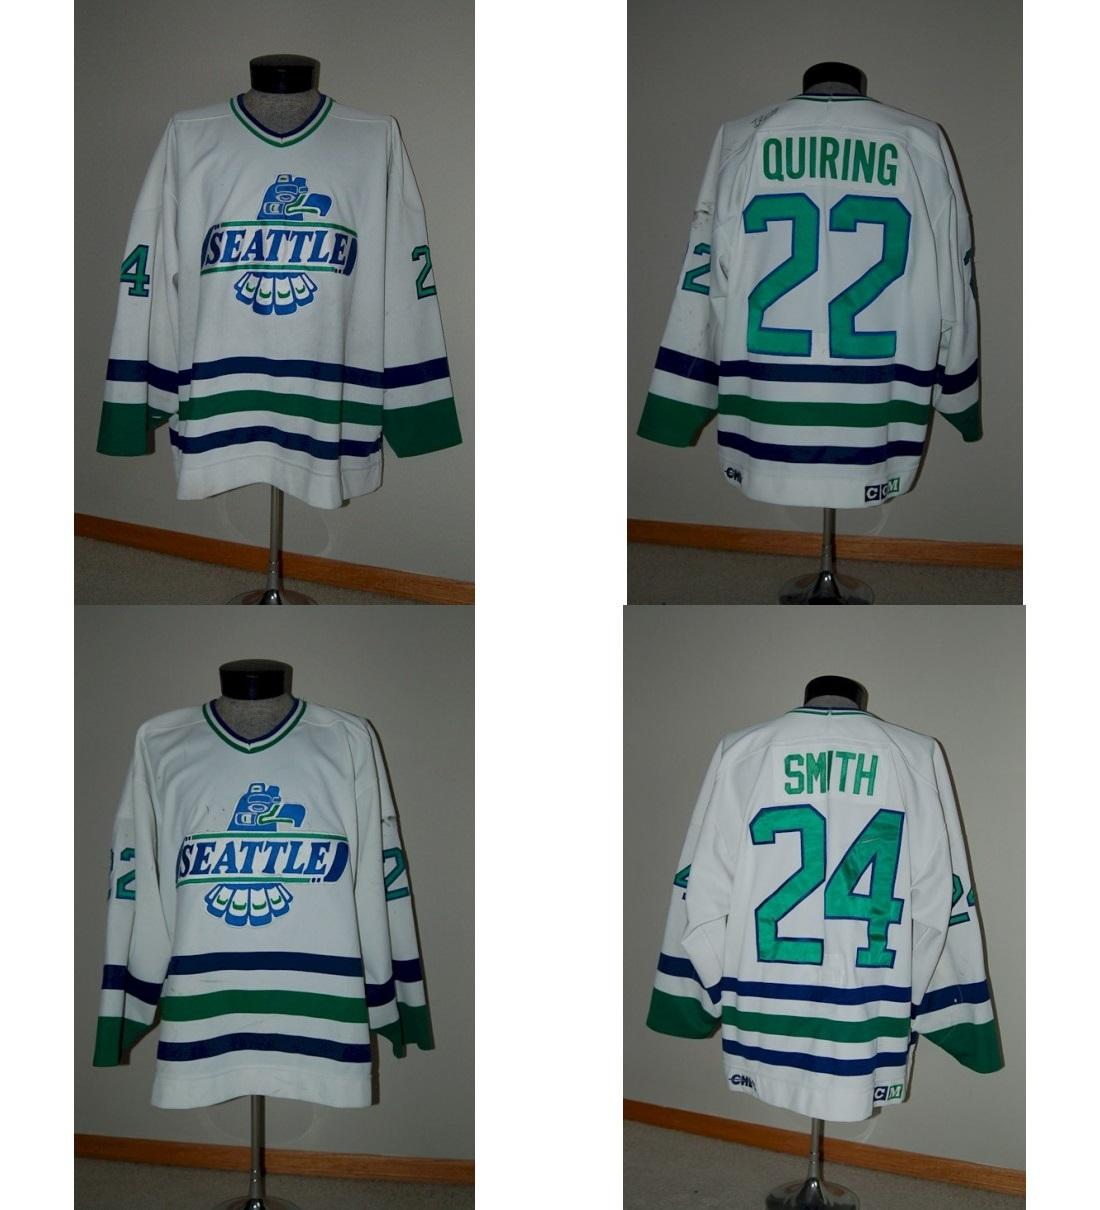 Customize Mens Womens Kids WHL Seattle Thunderbirds 22 Tyler Quiring 24  Darcy Smith Home Ice Ice Hockey Jerseys S-6XL Goalit Cut White 24 Darcy  Smith ... 044365af2